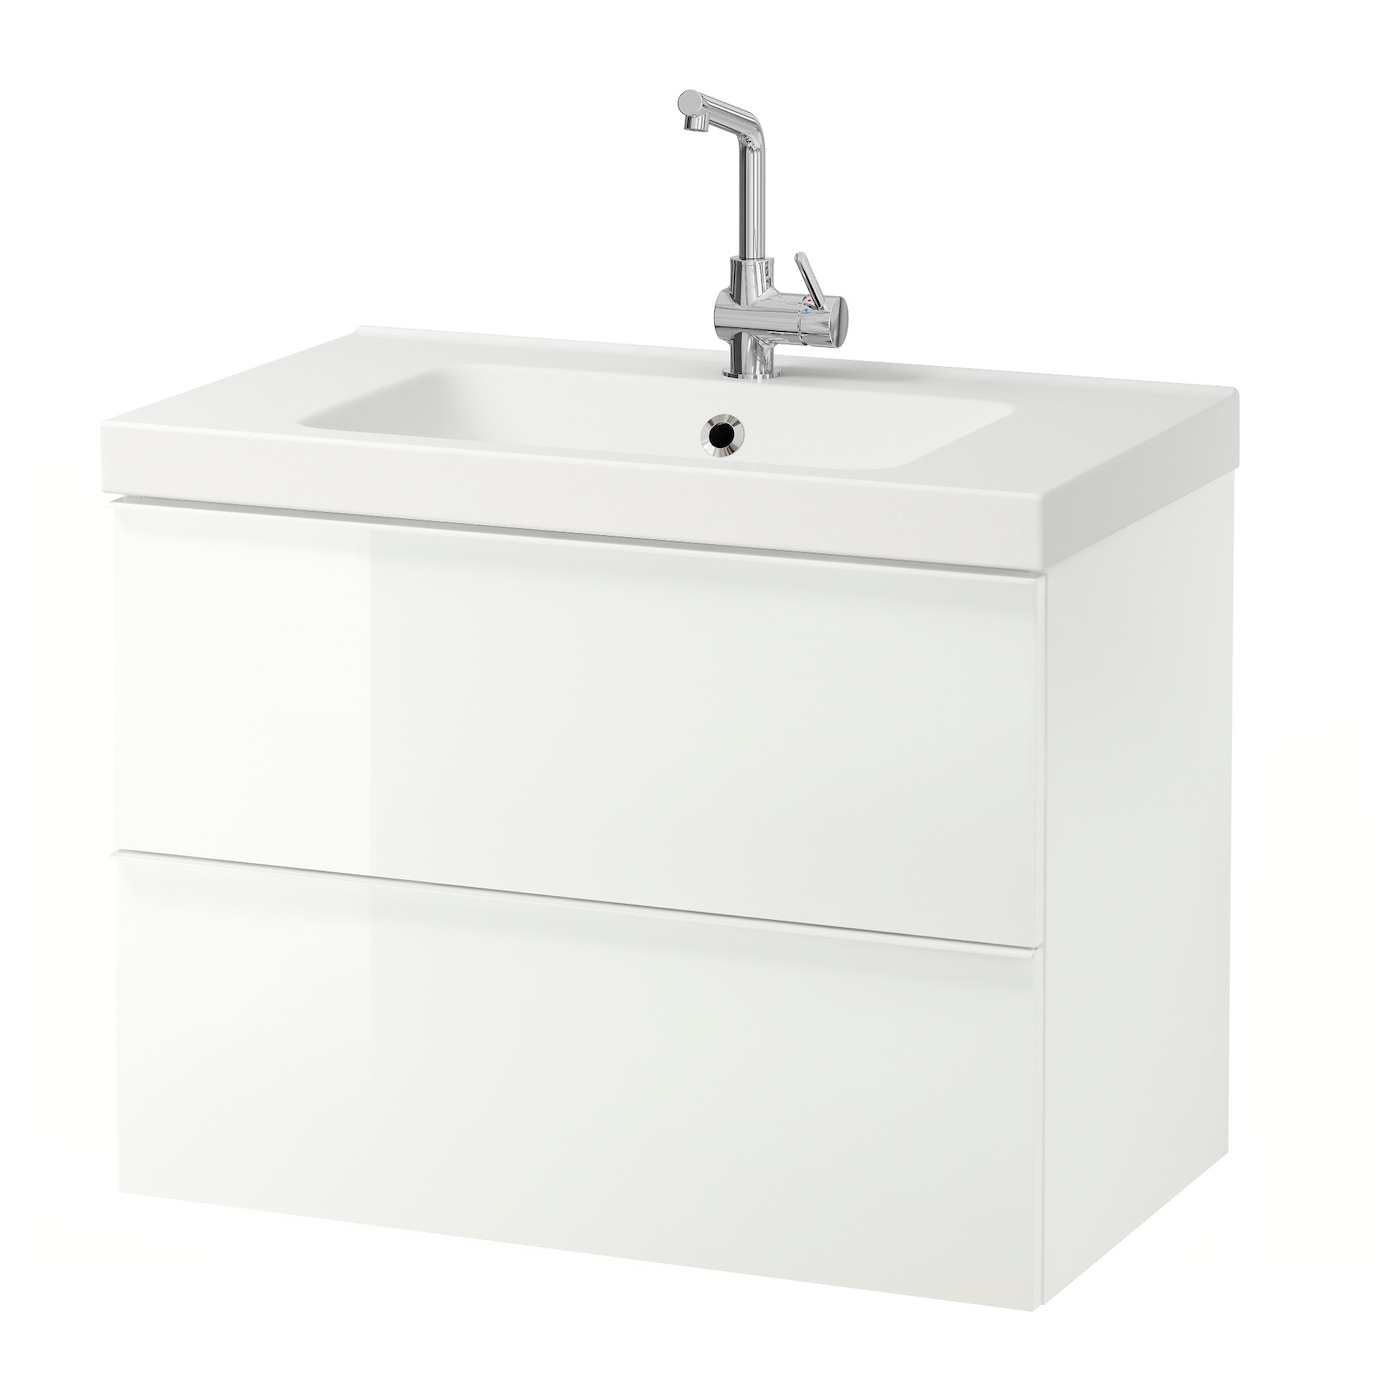 odensvik godmorgon meuble lavabo 2tir brillant blanc 83 x 49 x 64 cm ikea. Black Bedroom Furniture Sets. Home Design Ideas